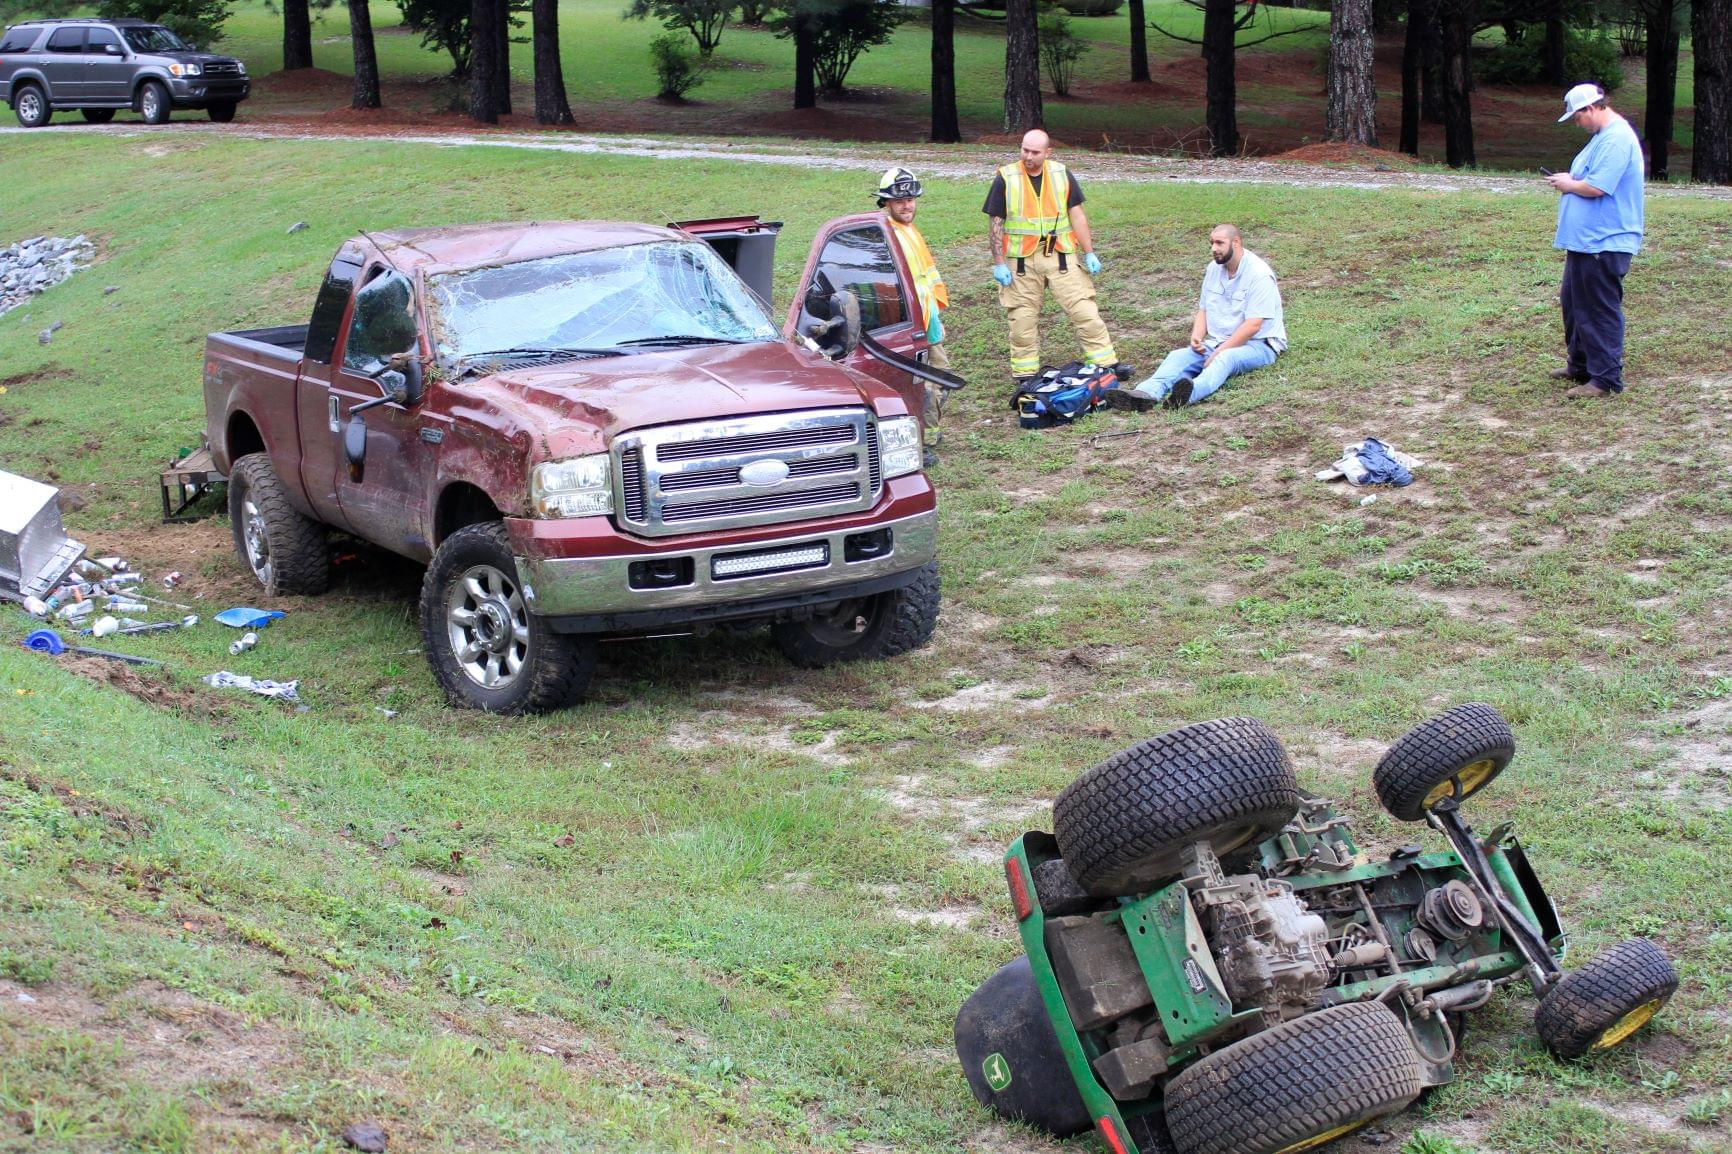 Trailer Detaches From Truck During Accident (PHOTOS)